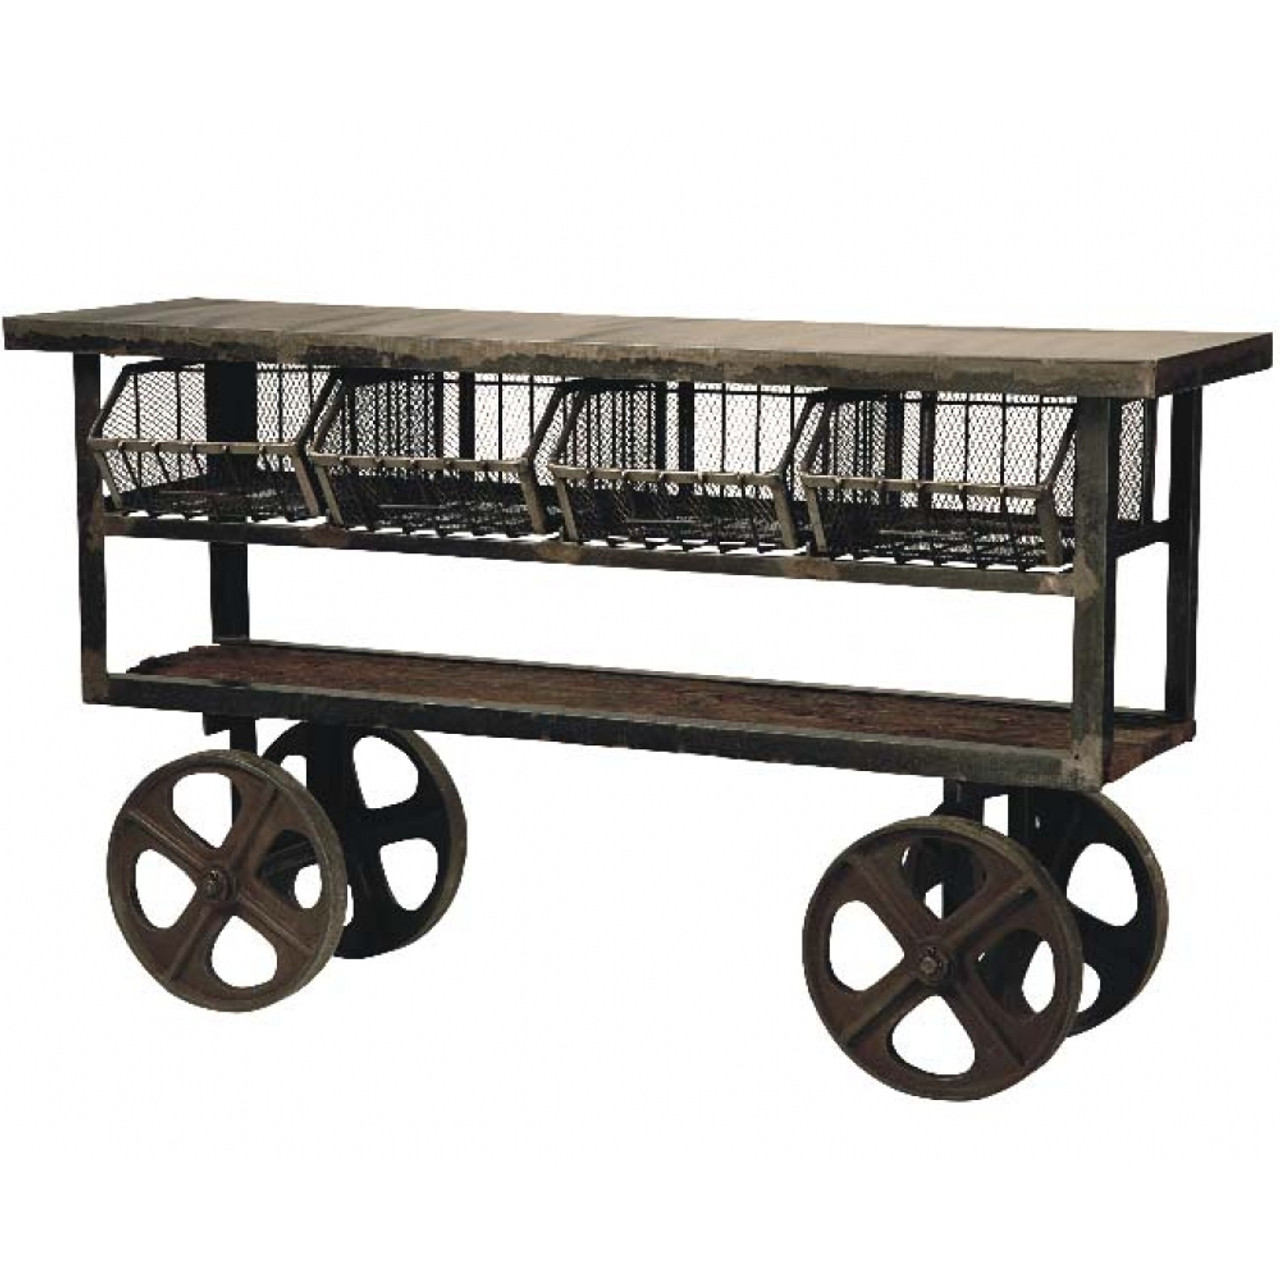 Industrial Kitchen Trolley: Industrial Rolling Kitchen Cart